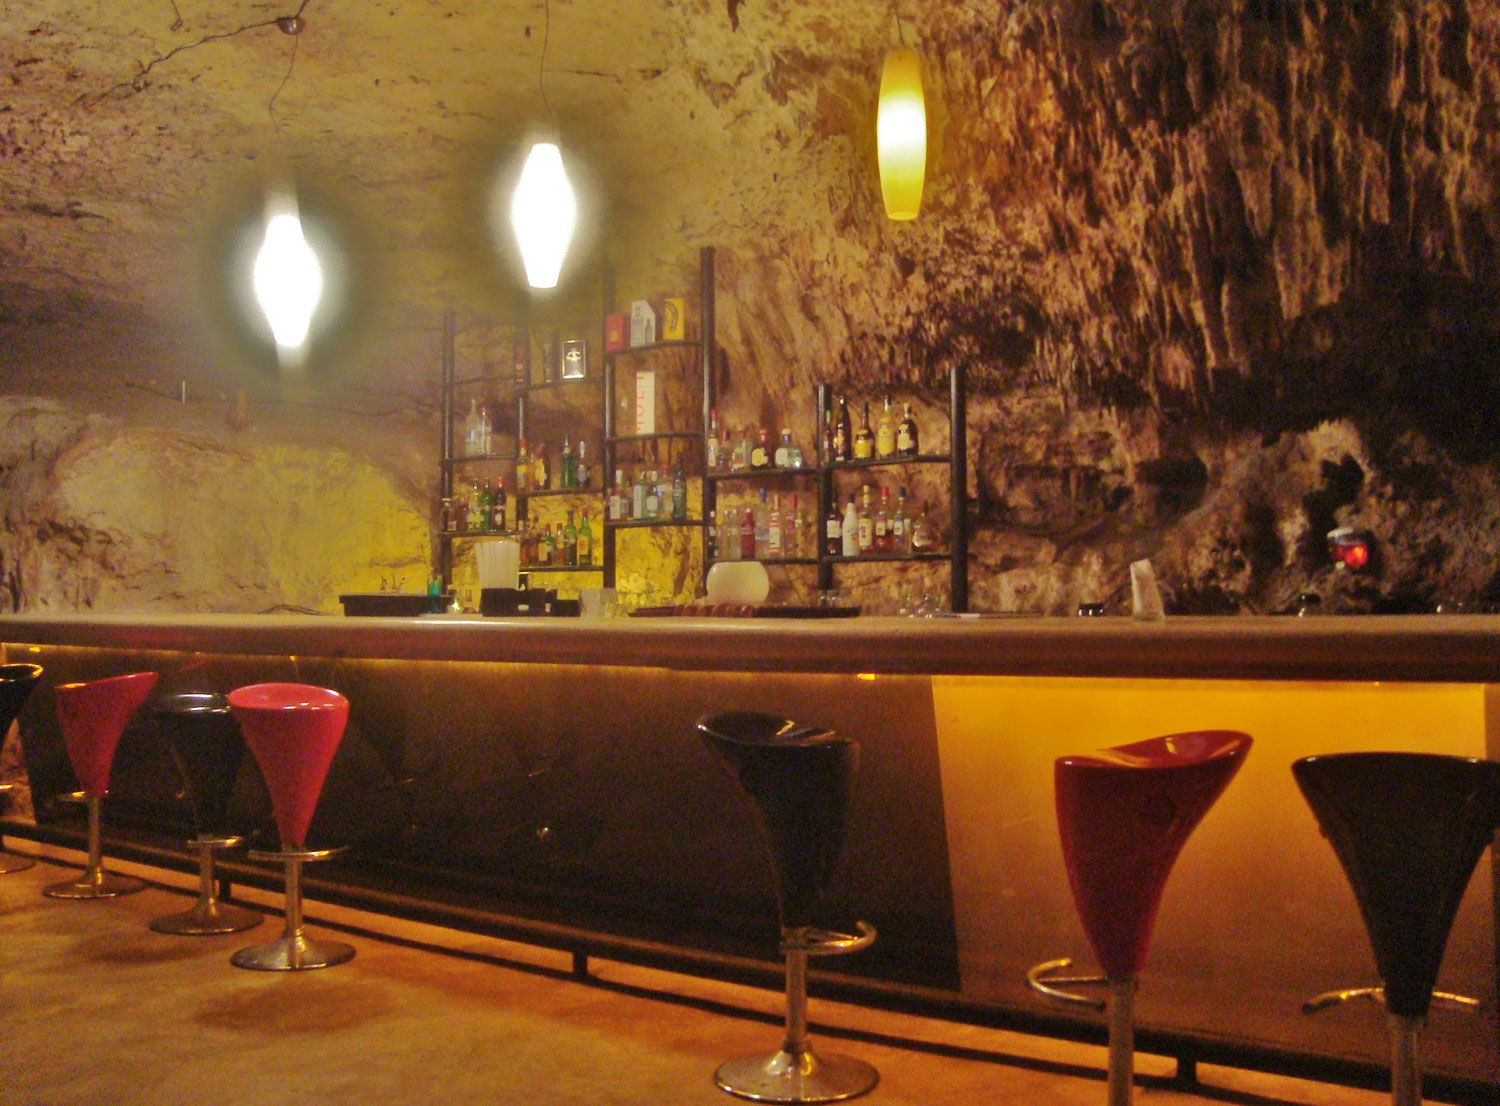 Arredamento del bar Alux Caverna Lounge in Messico